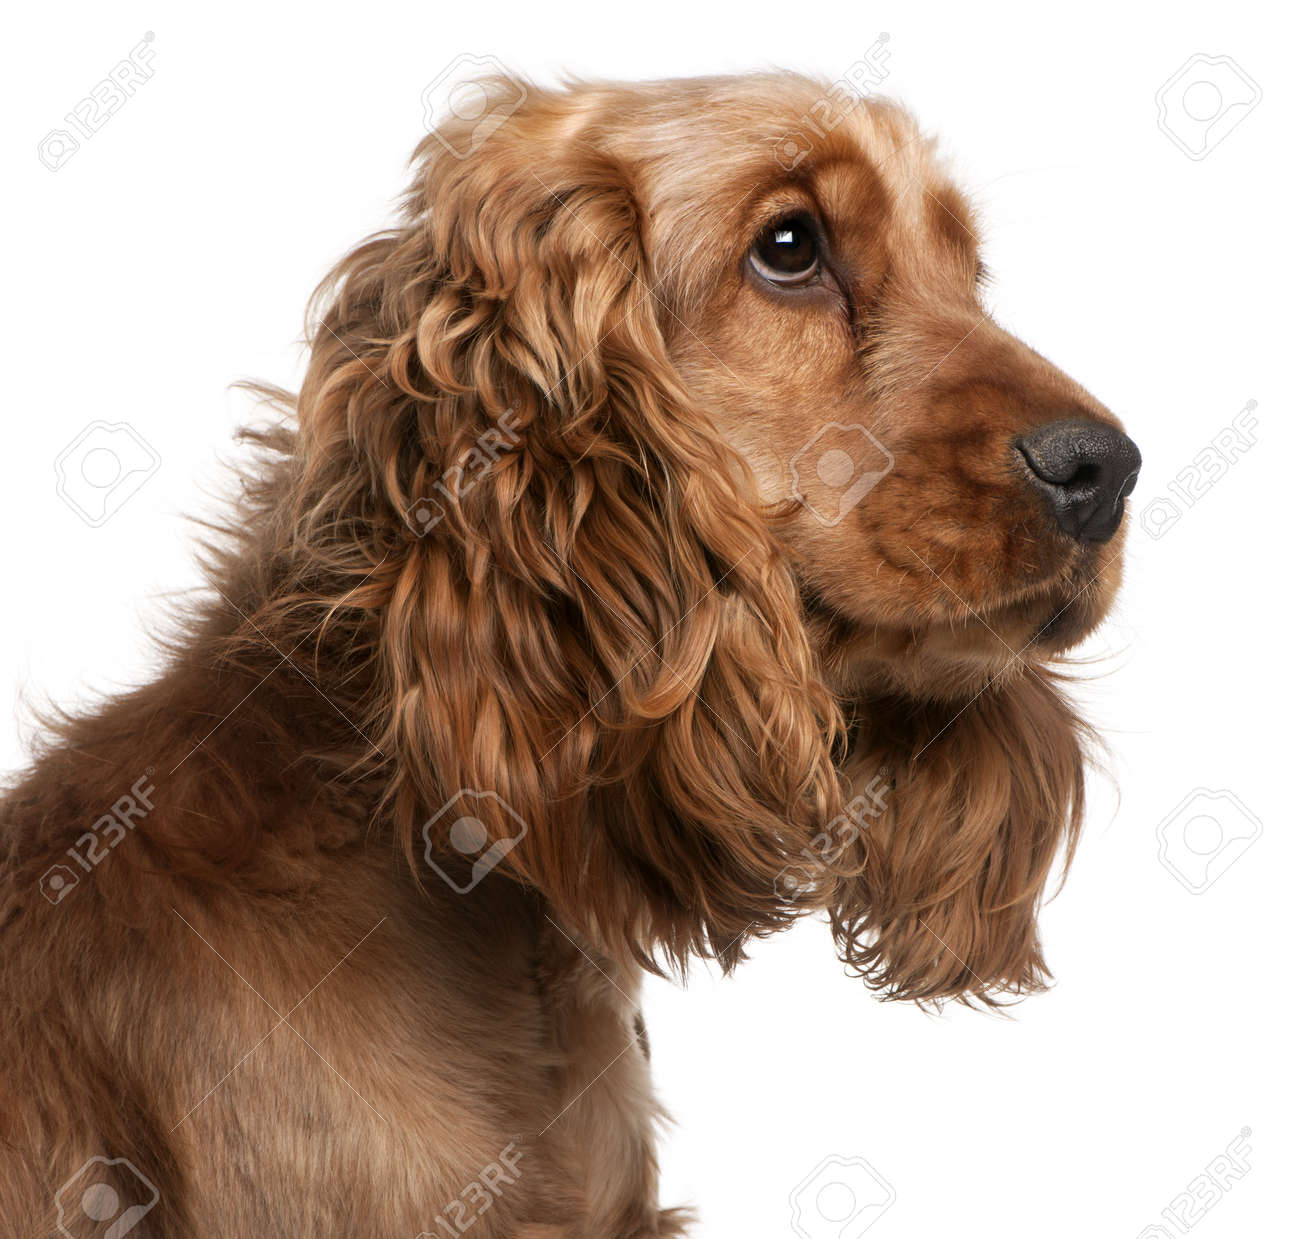 English Cocker Spaniel, 2 years old, in front of white background Stock Photo - 8973019